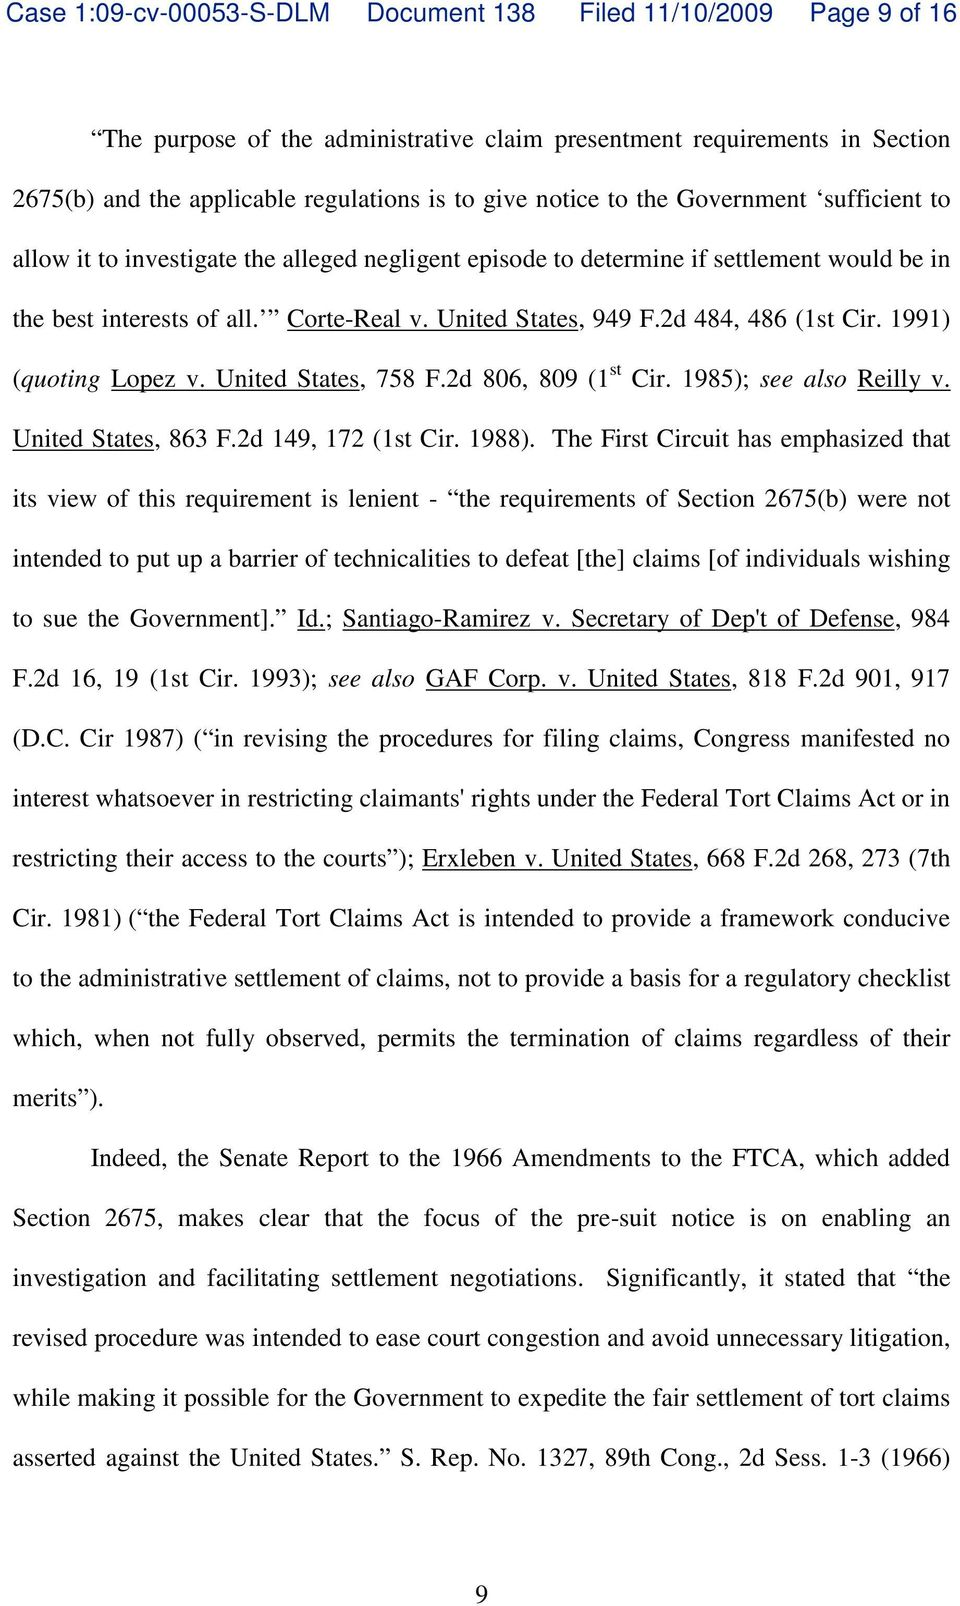 2d 484, 486 (1st Cir. 1991) (quoting Lopez v. United States, 758 F.2d 806, 809 (1 st Cir. 1985); see also Reilly v. United States, 863 F.2d 149, 172 (1st Cir. 1988).